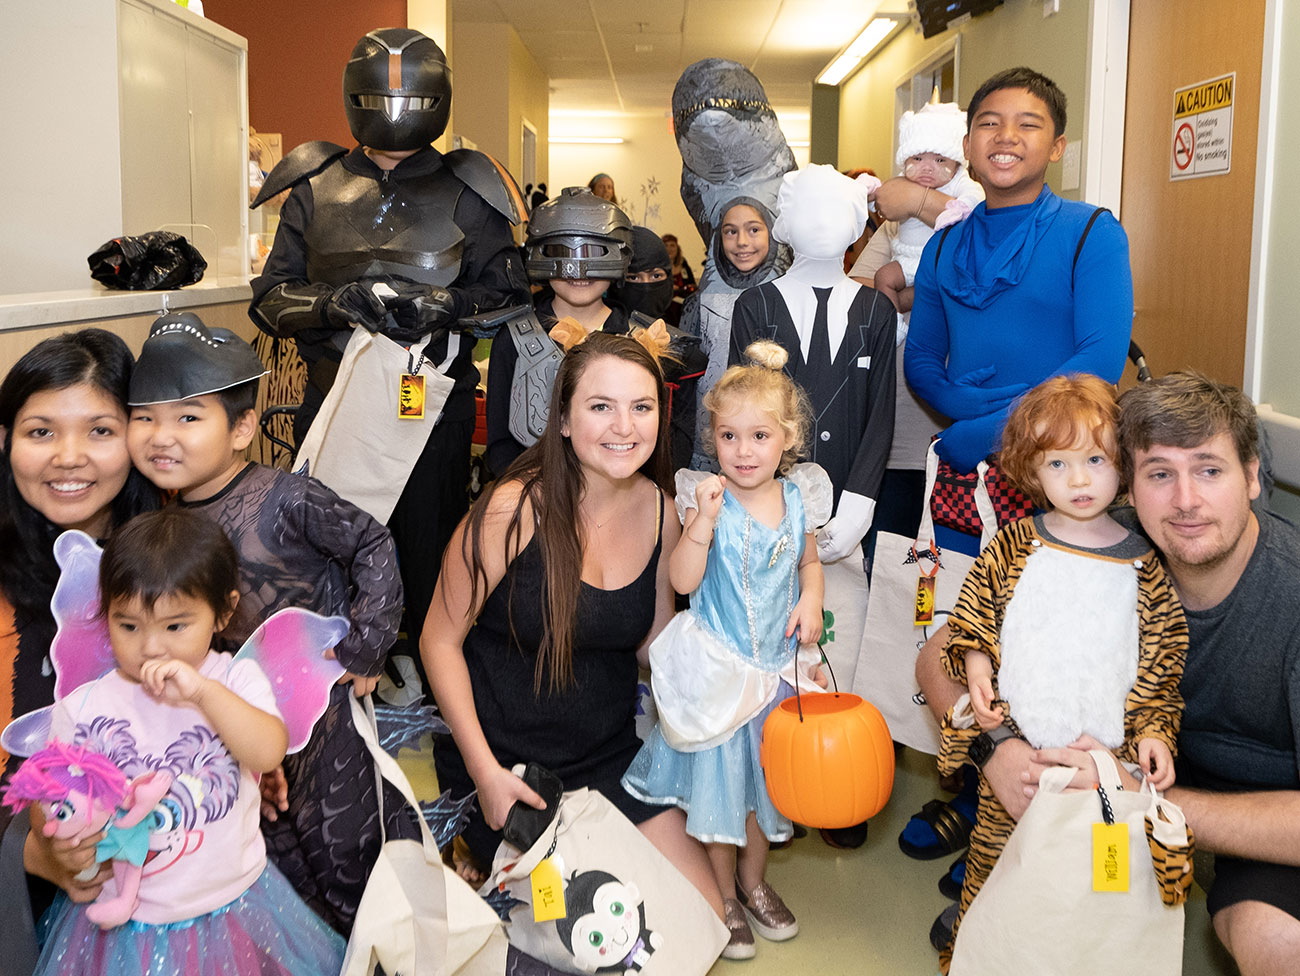 Keiki attendees at Kaiser Permanente's annual Halloween trick-or-treat event at the Moanalua Medical Center in Hawaii.